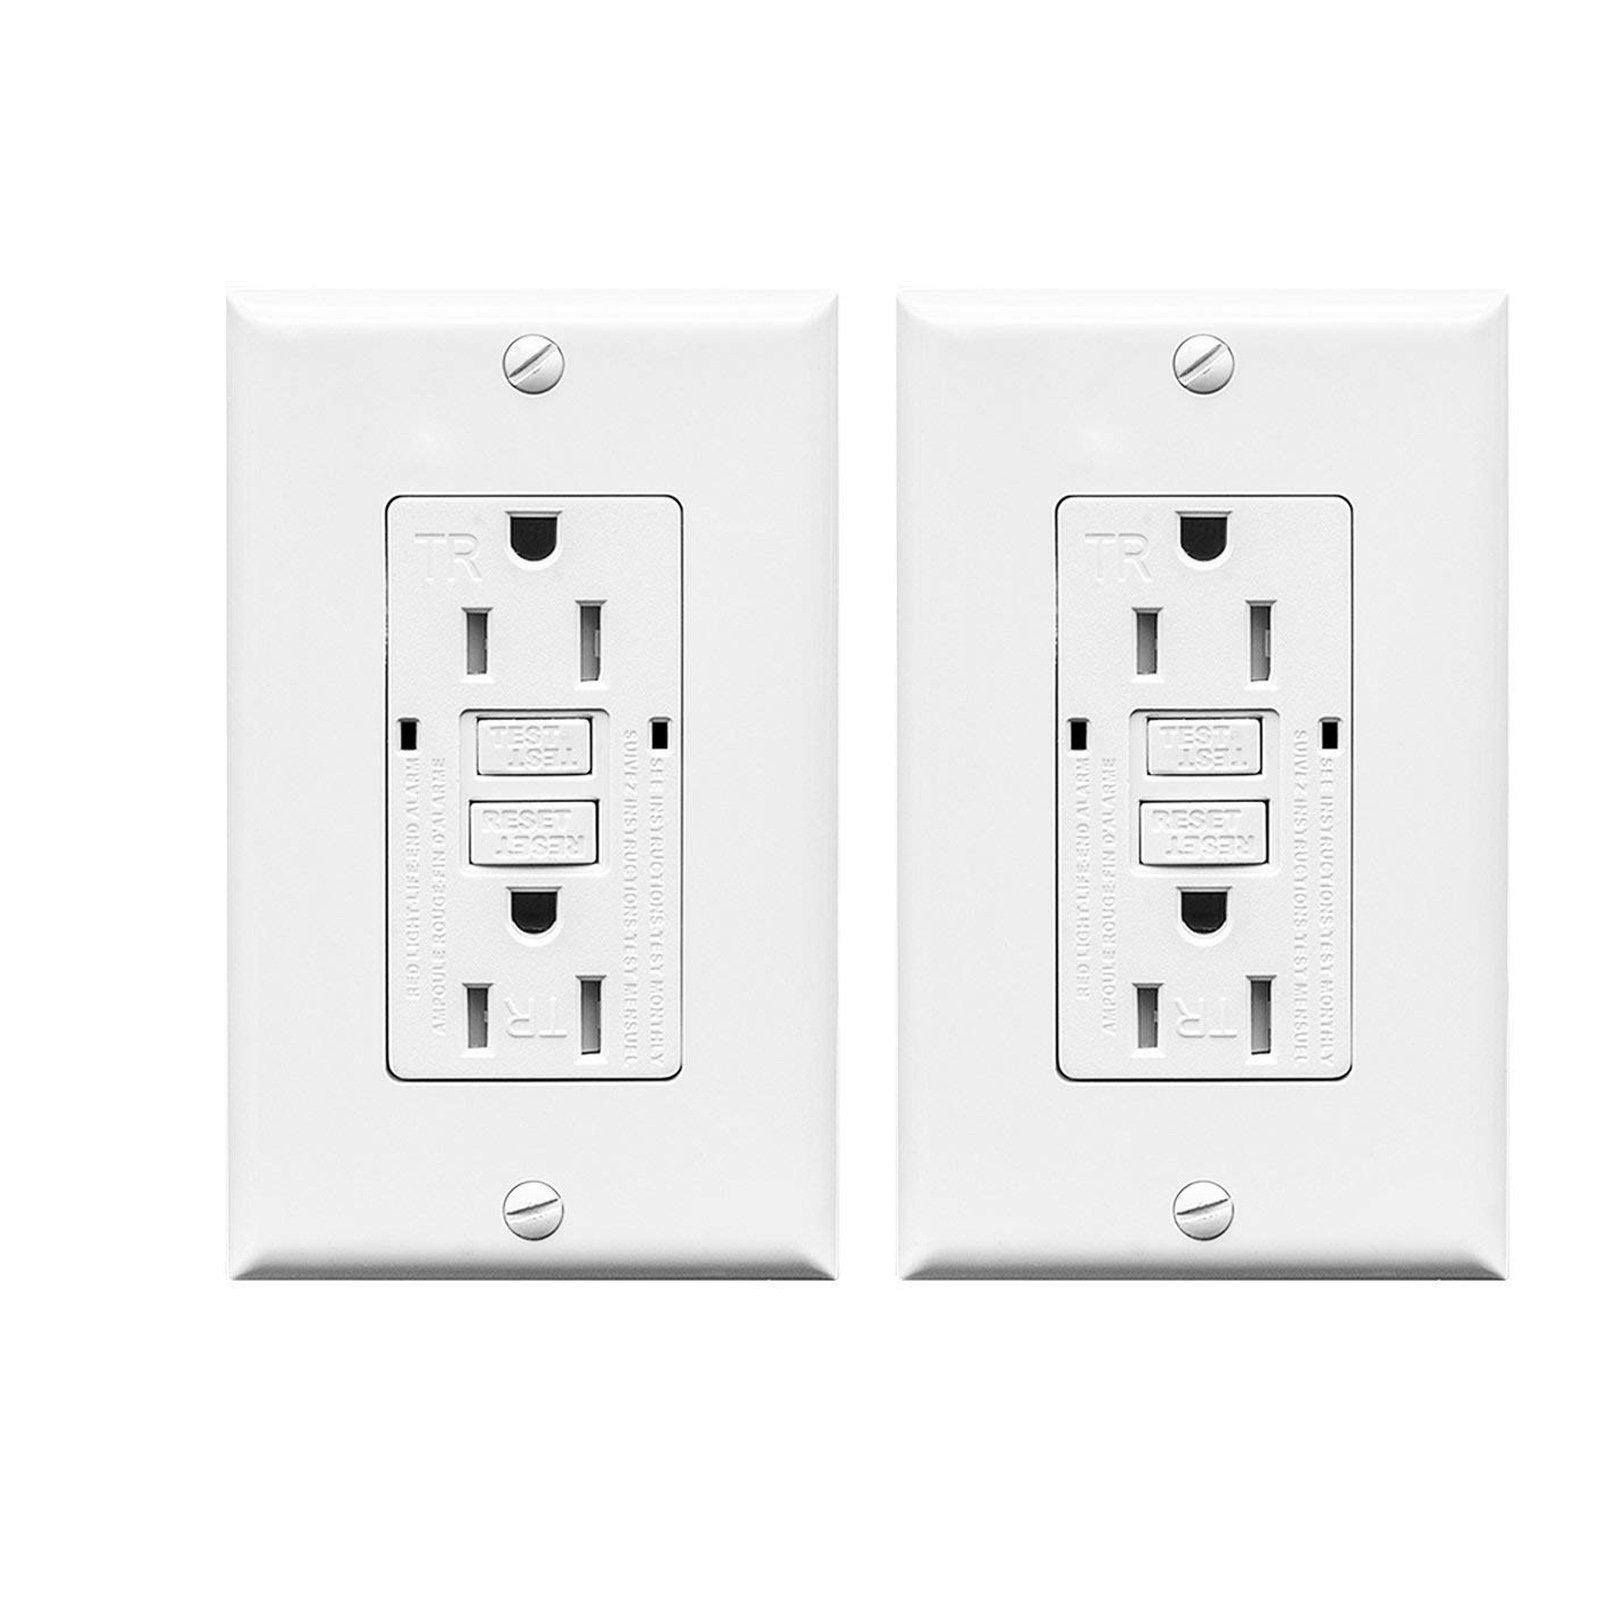 Yougagirl 2 Pack GFCI Outlet 15amp 125 Volt GFCI Receptacle Tamper Resistant GFCI Outdoor Outlet with LED Indicater Light and 2 Wall Plates Auto-Test Function UL Certified (2 Pack) by Yougagirl (Image #1)